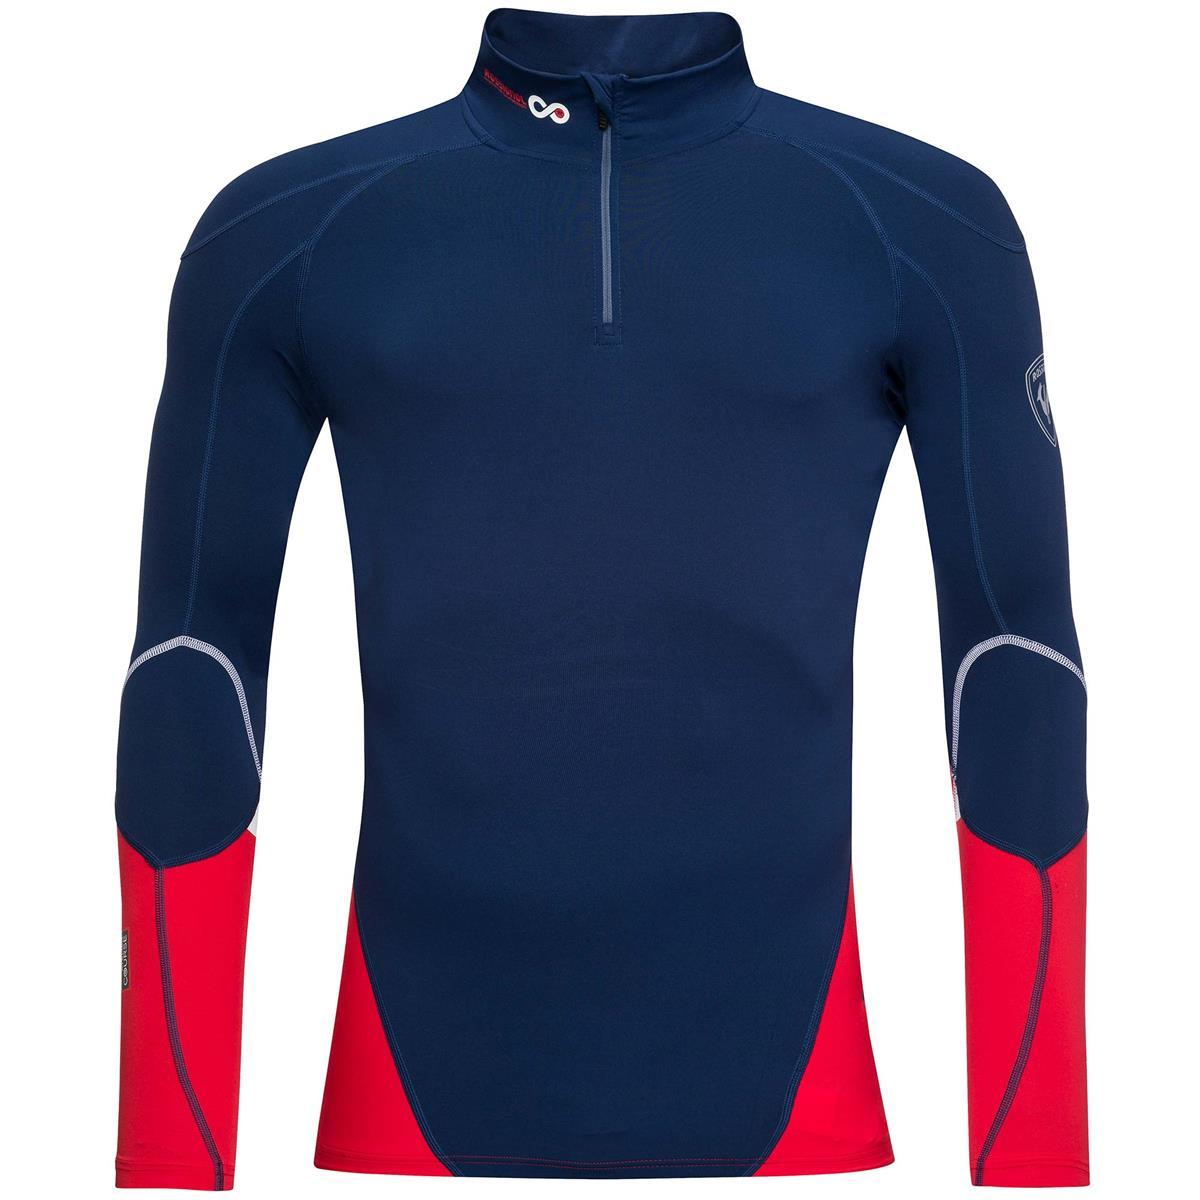 Rossignol Apparel Infini Compression Race Top